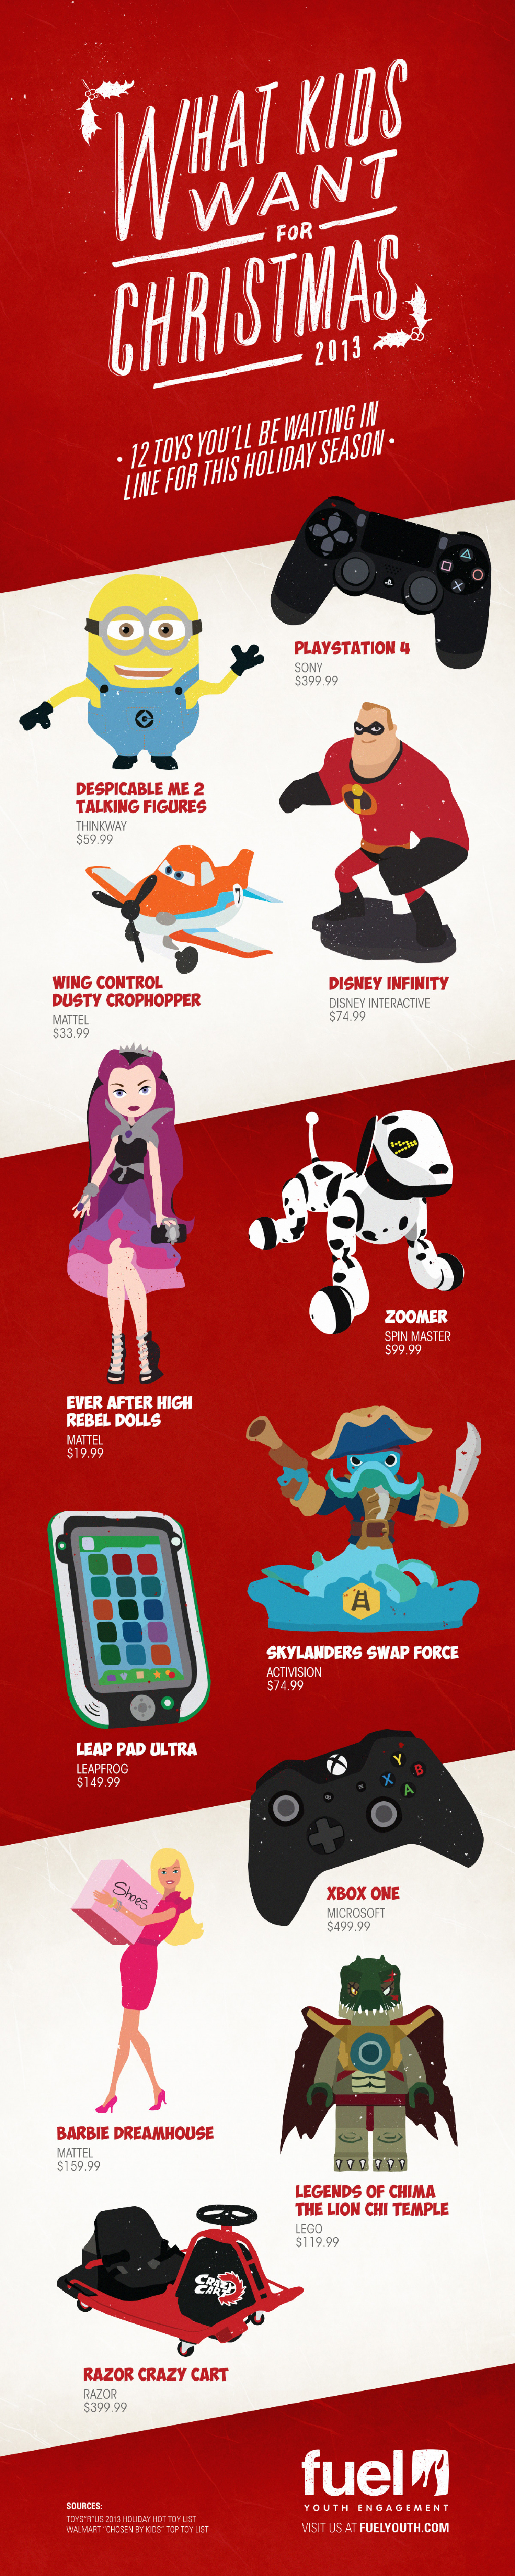 What Kids Want for Christmas 2013 Infographic